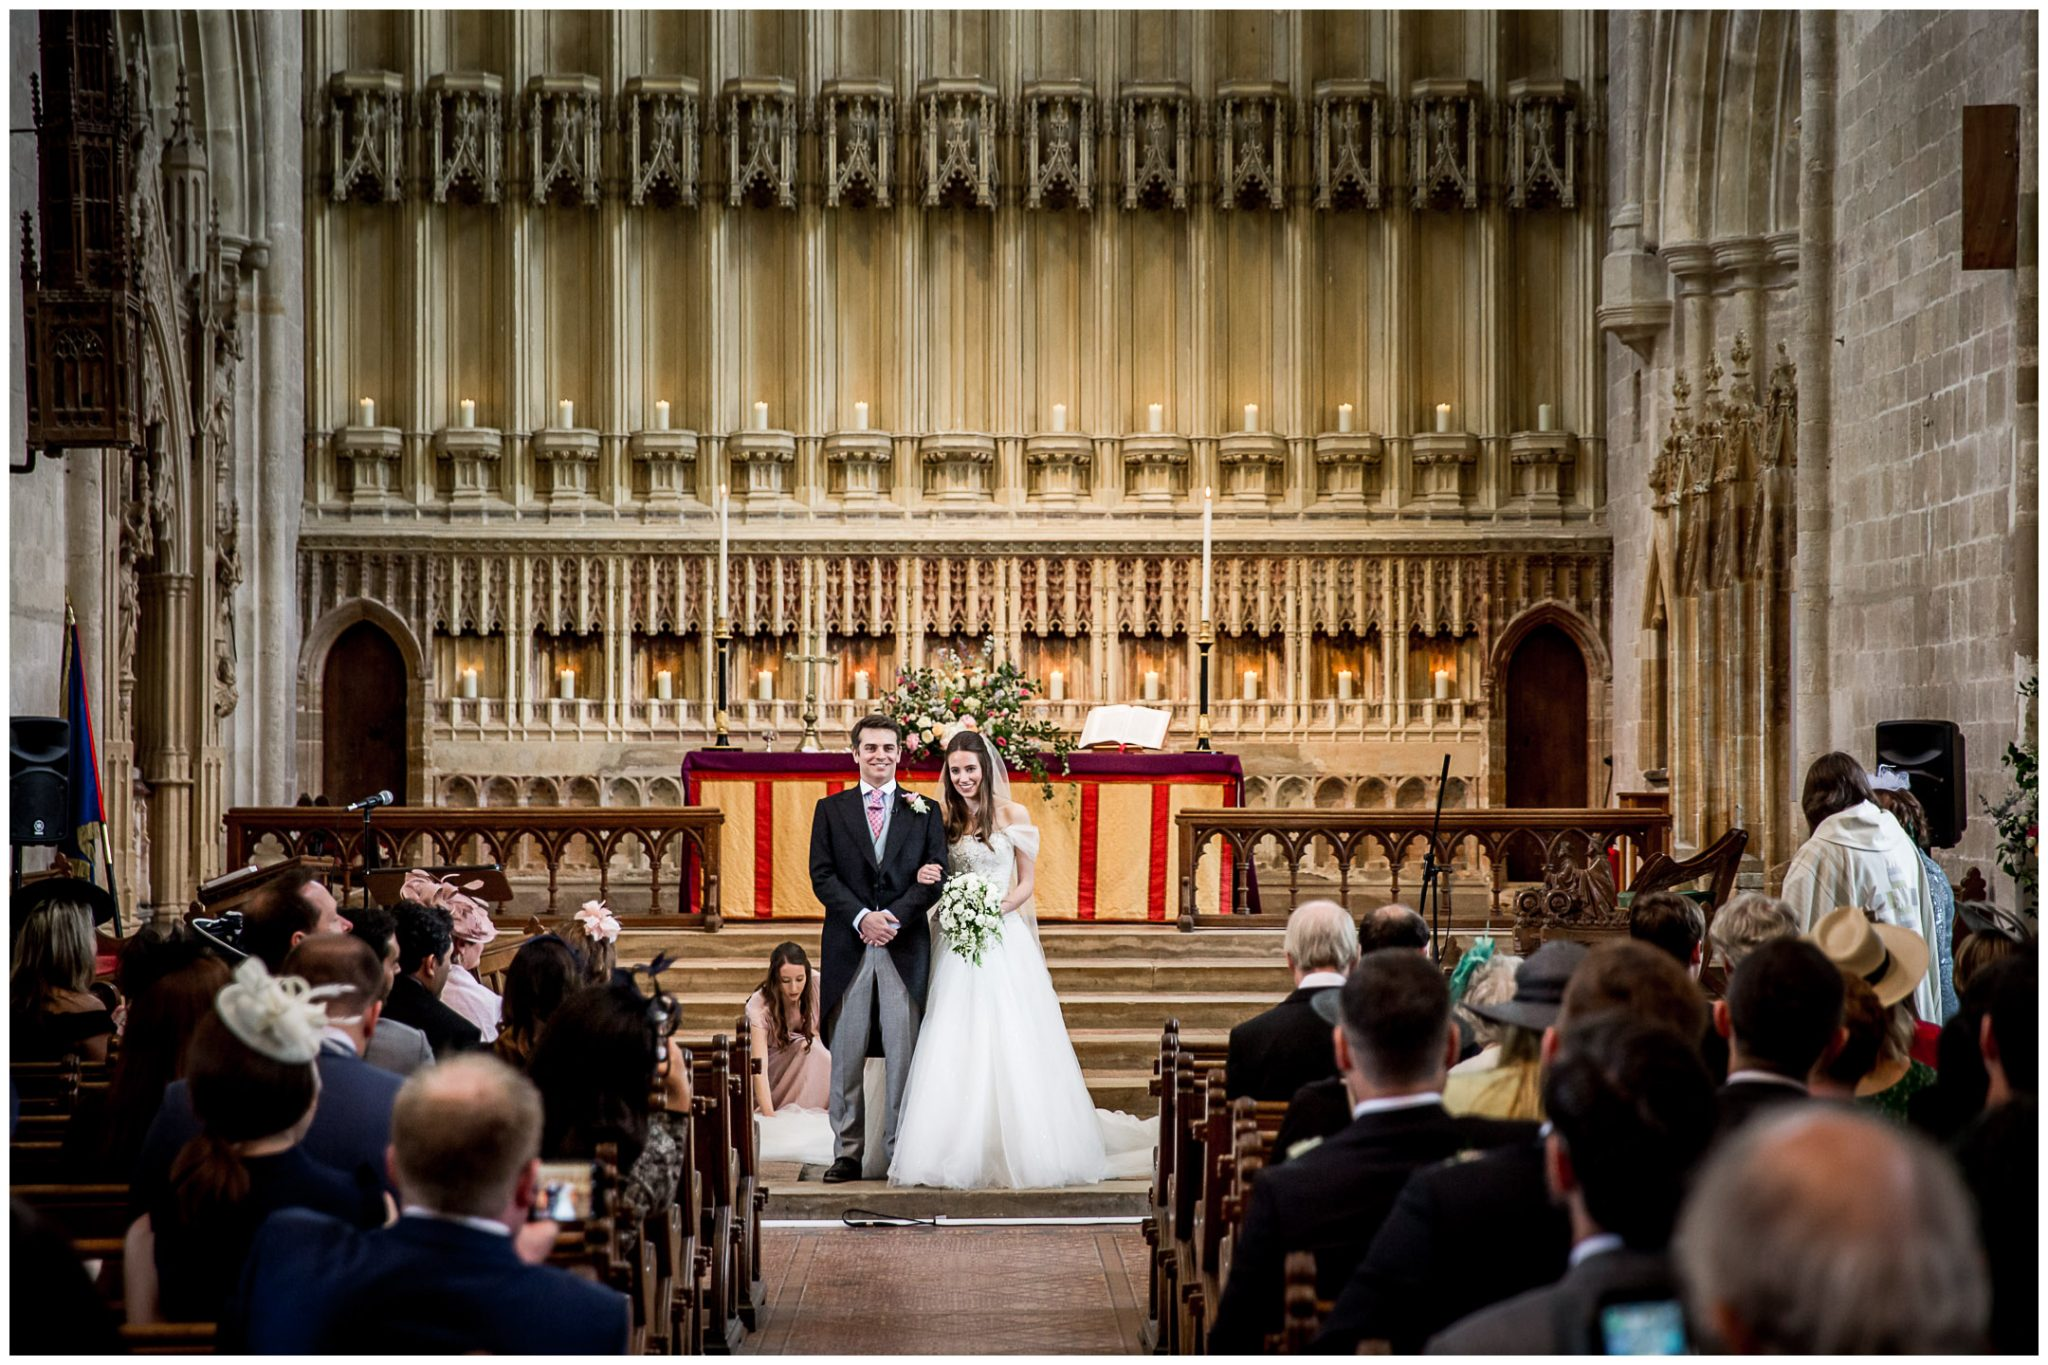 The couple stand together at the front of the church after their wedding